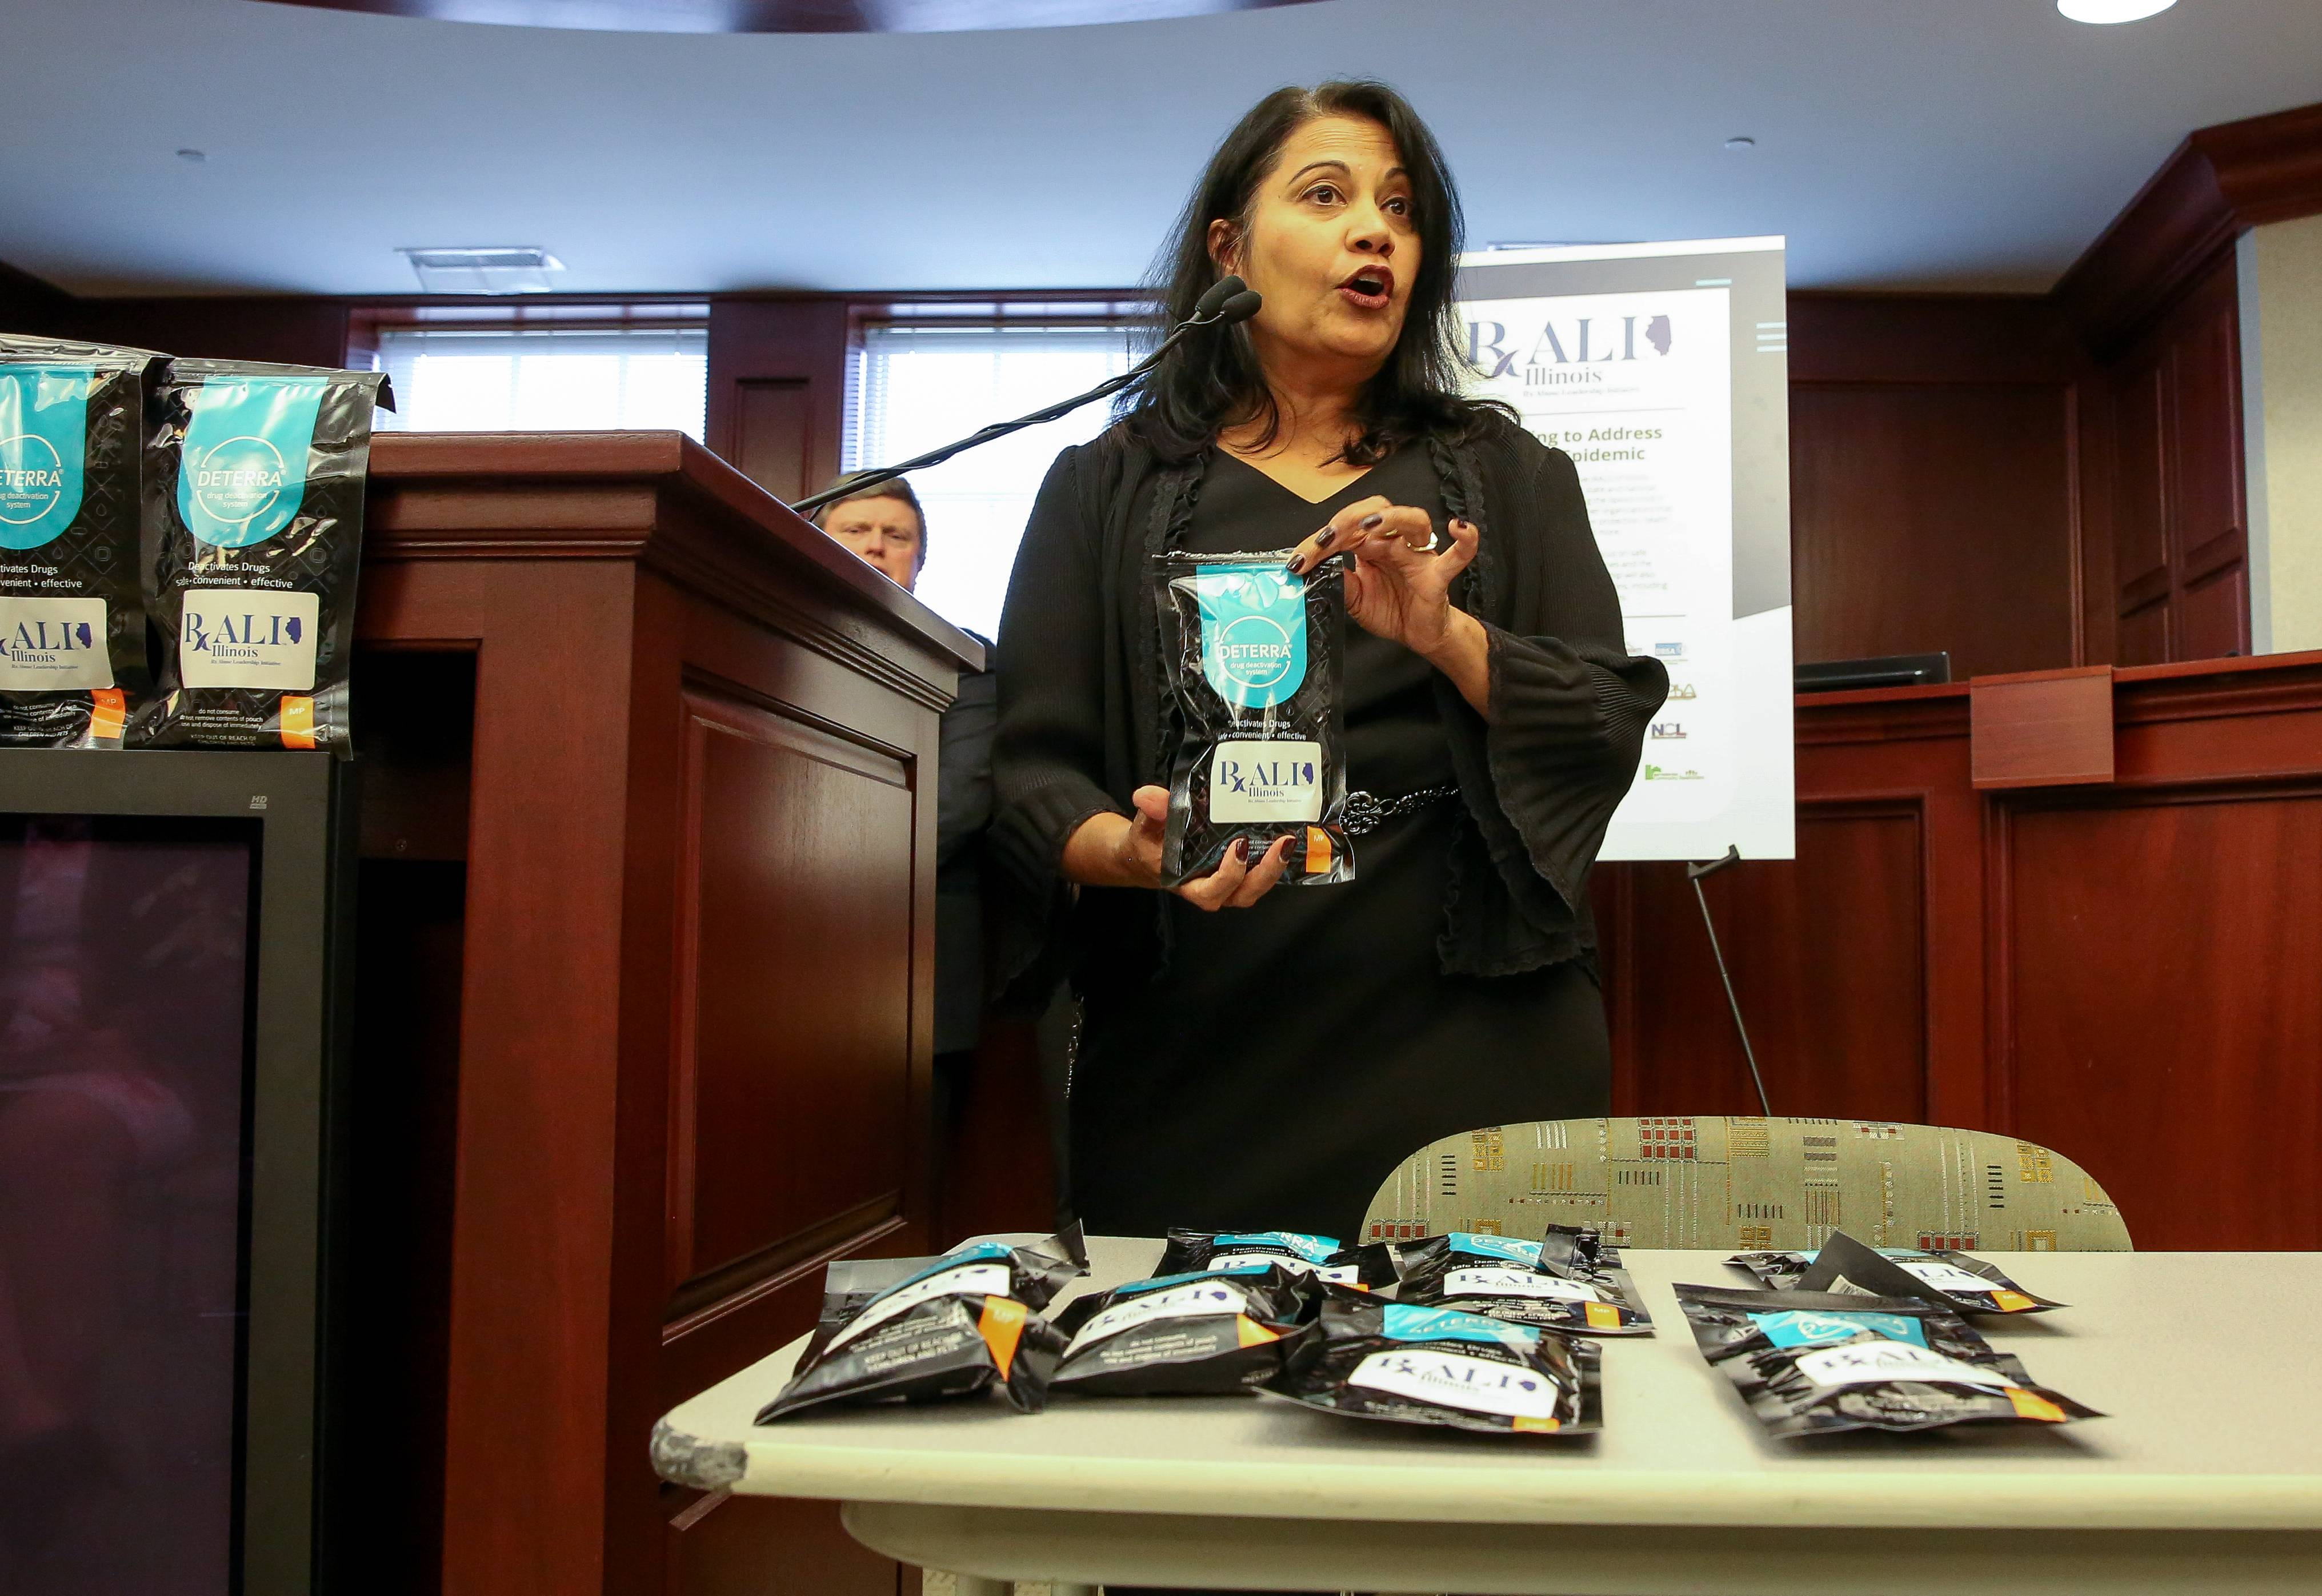 Fighting the opioid crisis: Statewide program distributing pouches that safely dissolve unwanted pills